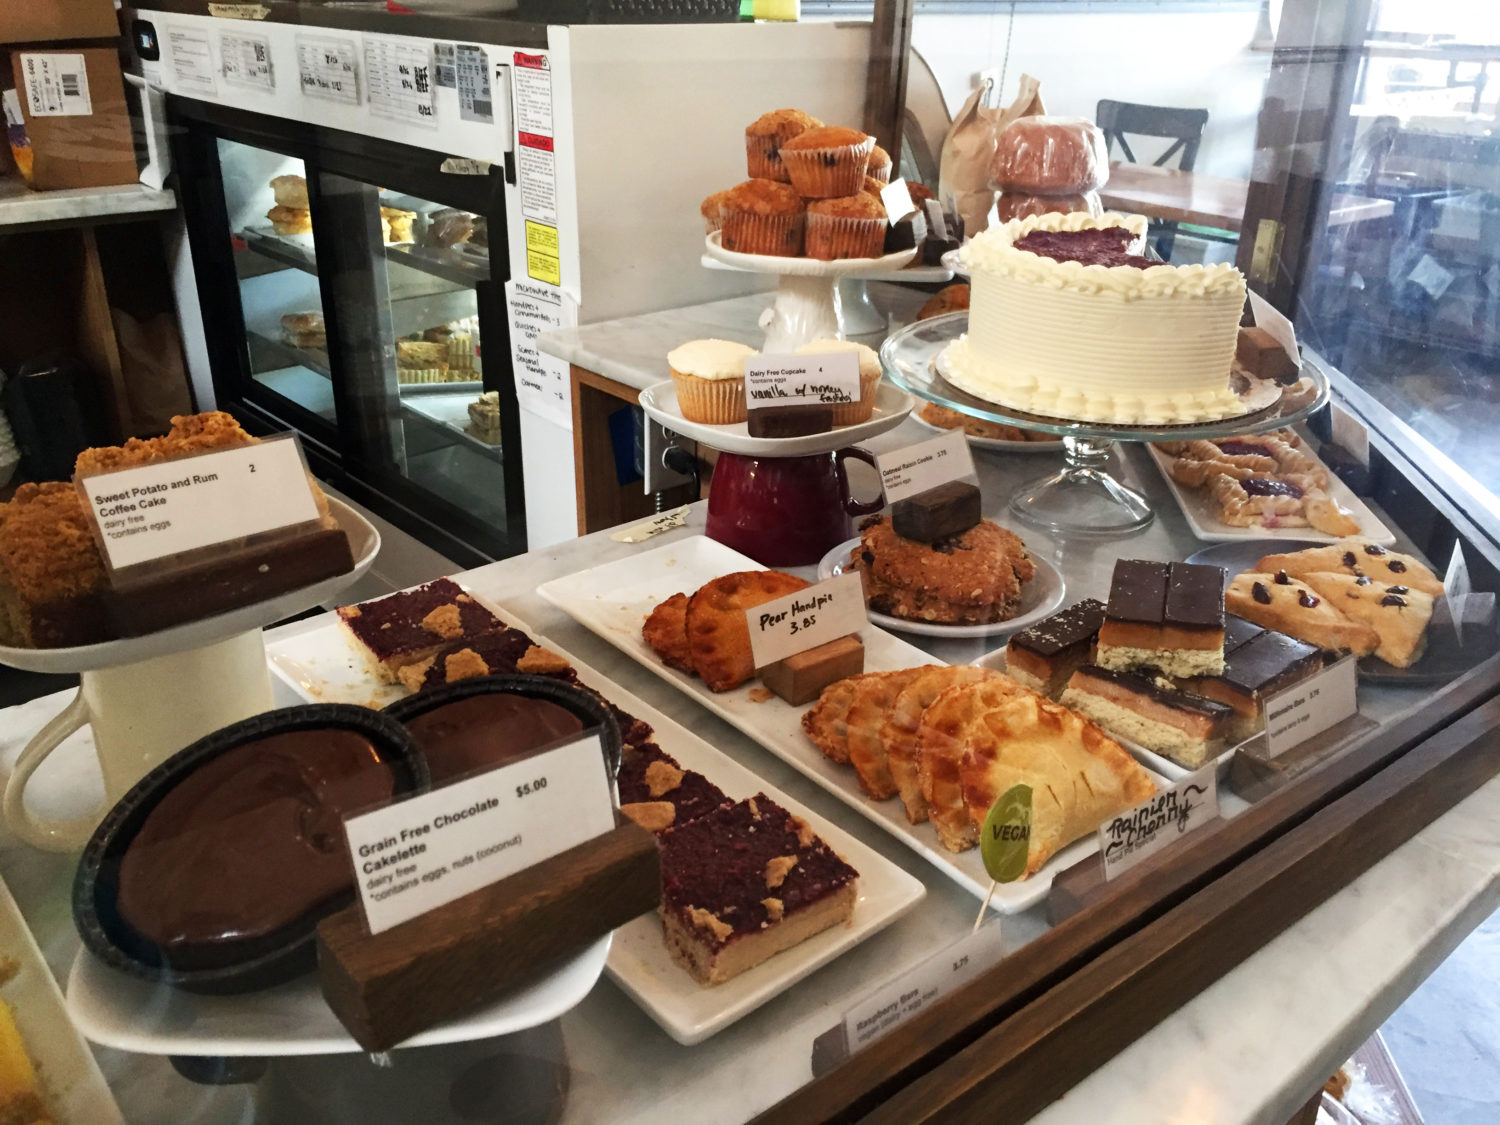 Delicious gluten free and some vegan pastries and cakes at Nuflours